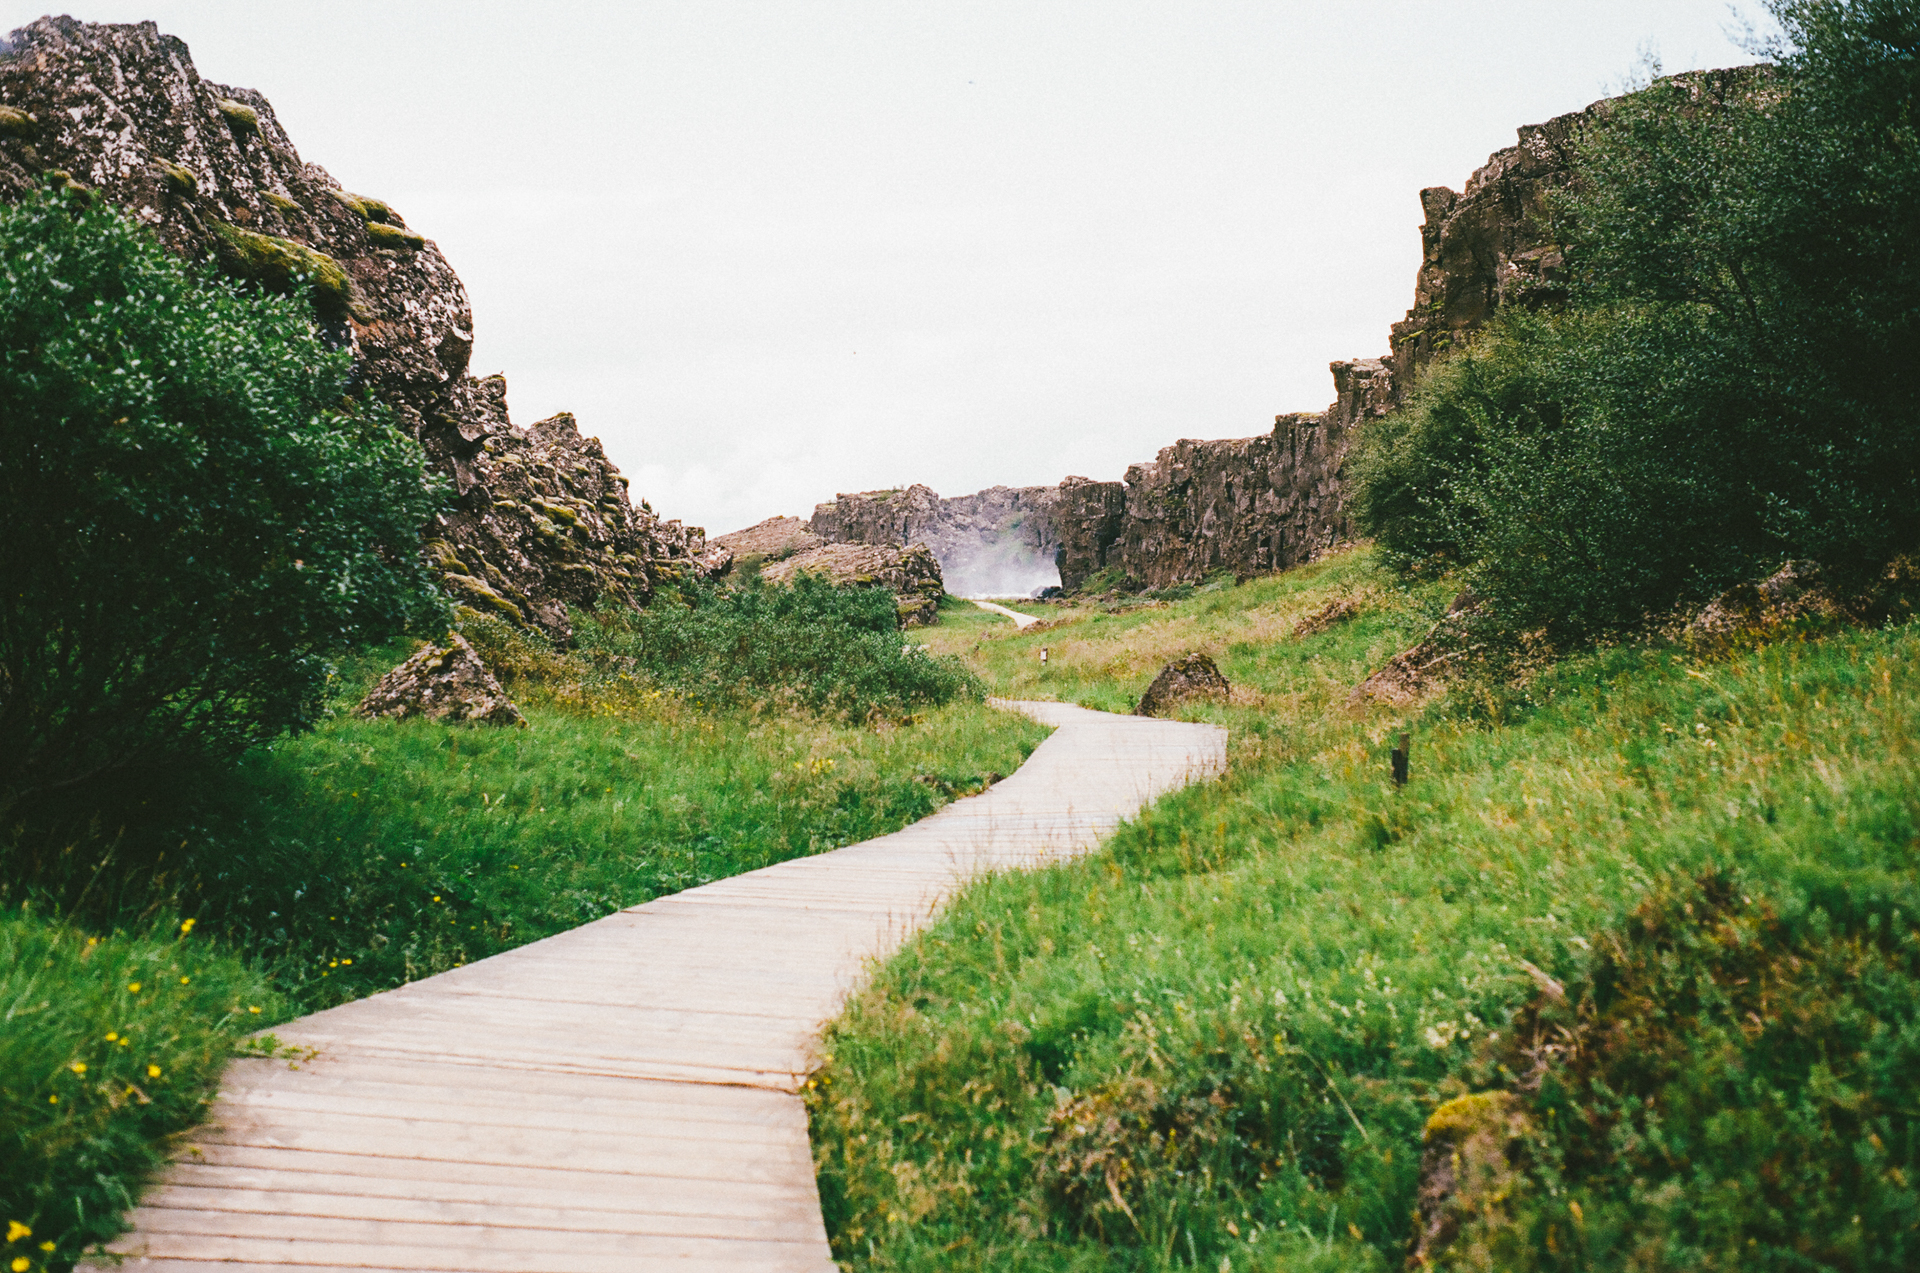 Free stock photo of hiking path pathway Pathway images